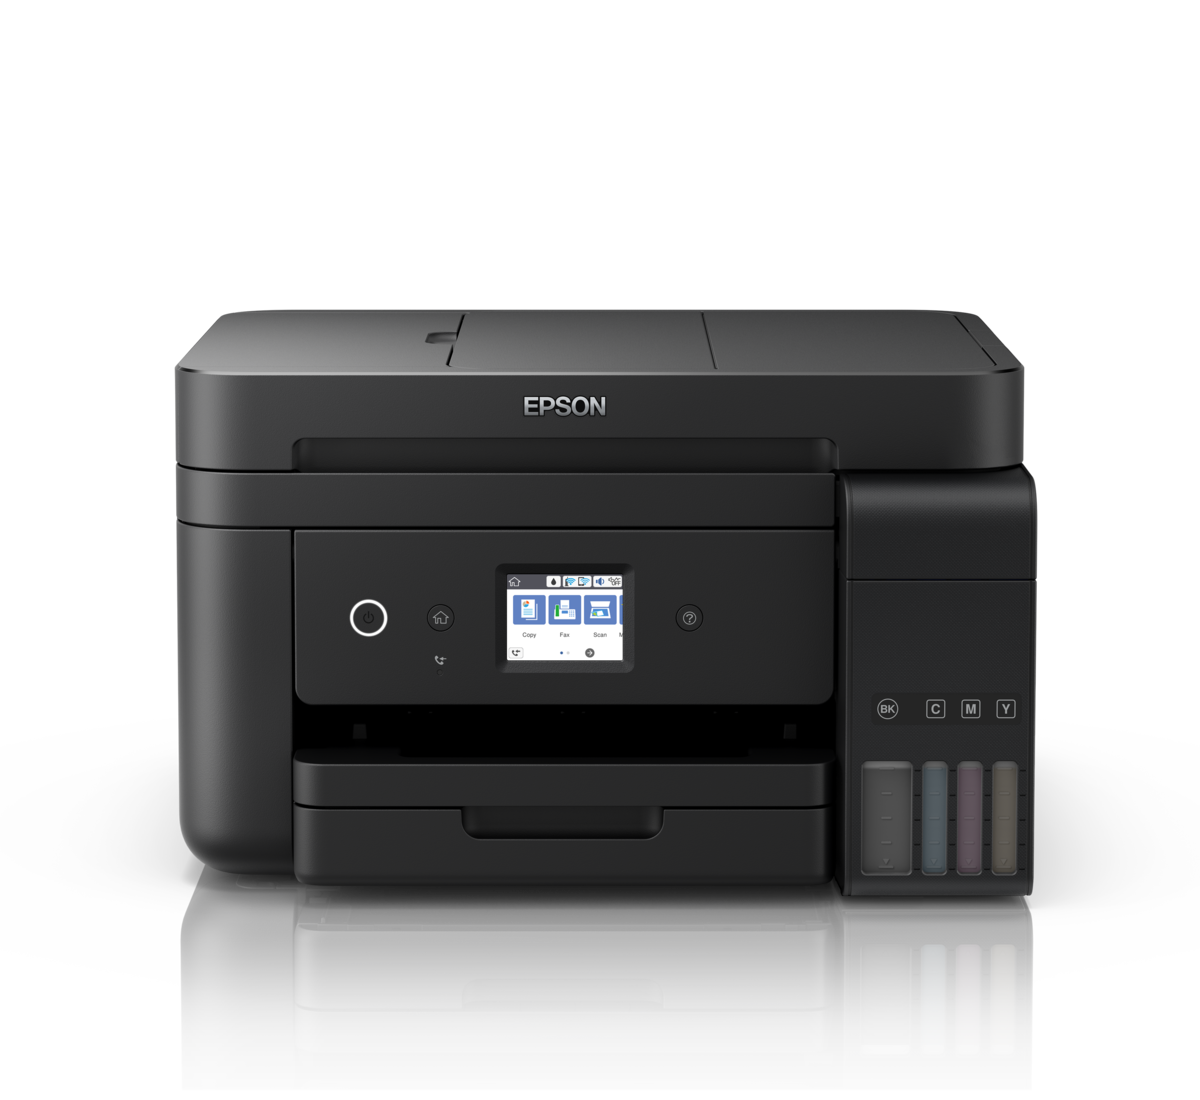 Epson L6190 Wi Fi Duplex All In One Ink Tank Printer With Adf Ink Tank System Printers Epson Indonesia